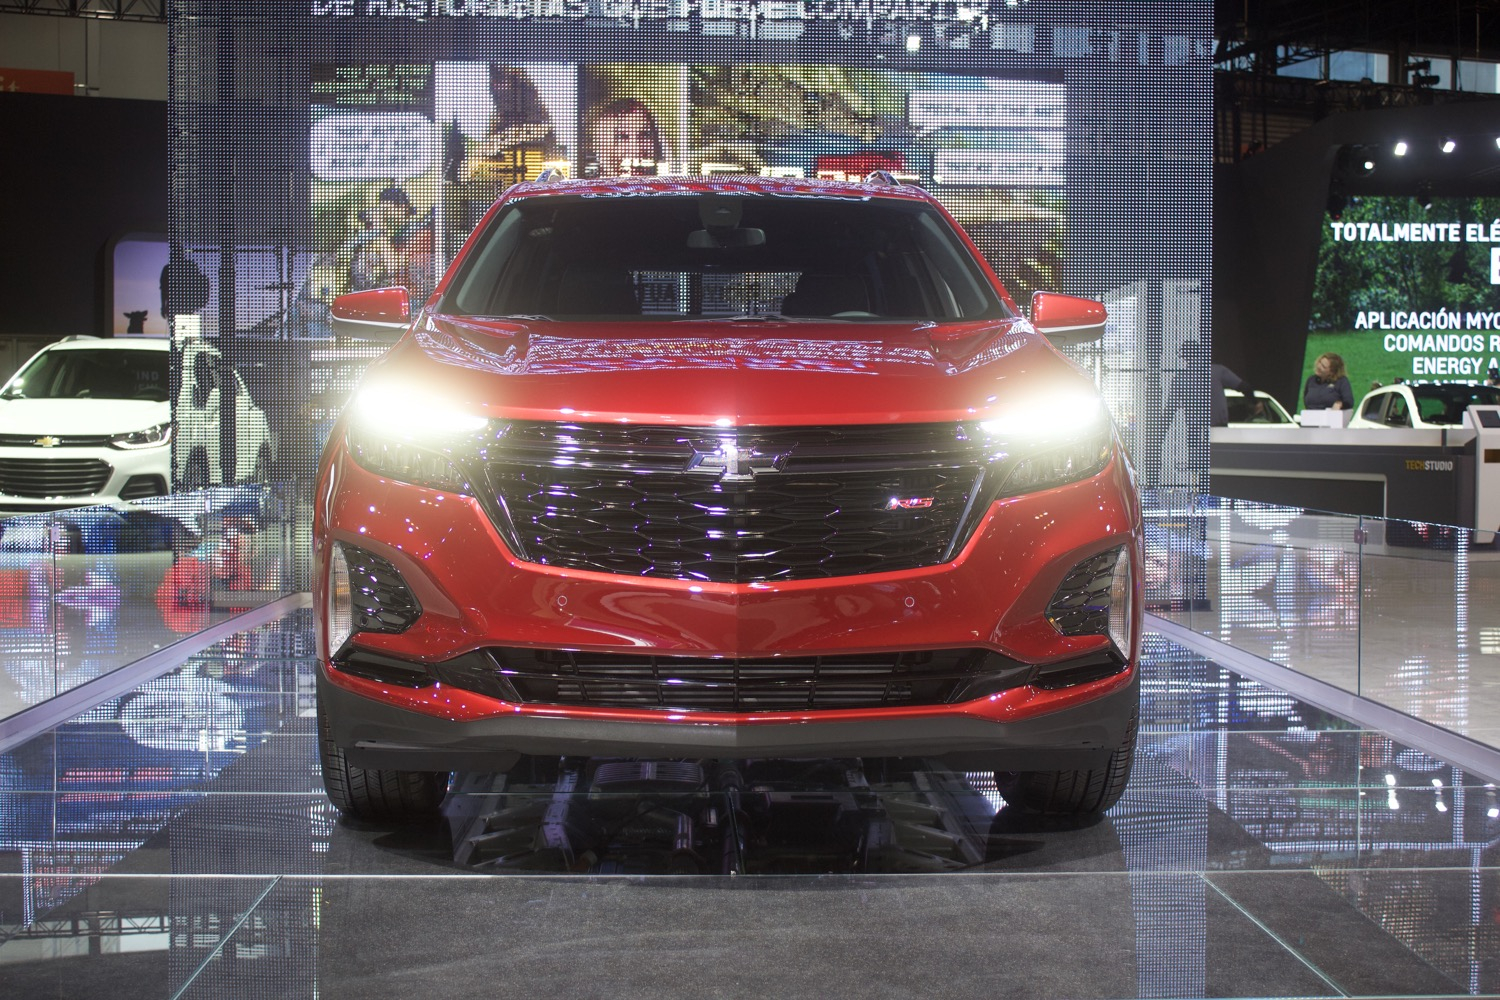 2021 Chevrolet Equinox Rs: Live Photo Gallery   Gm Authority 2021 Chevy Equinox Premier Near Me, New, Options